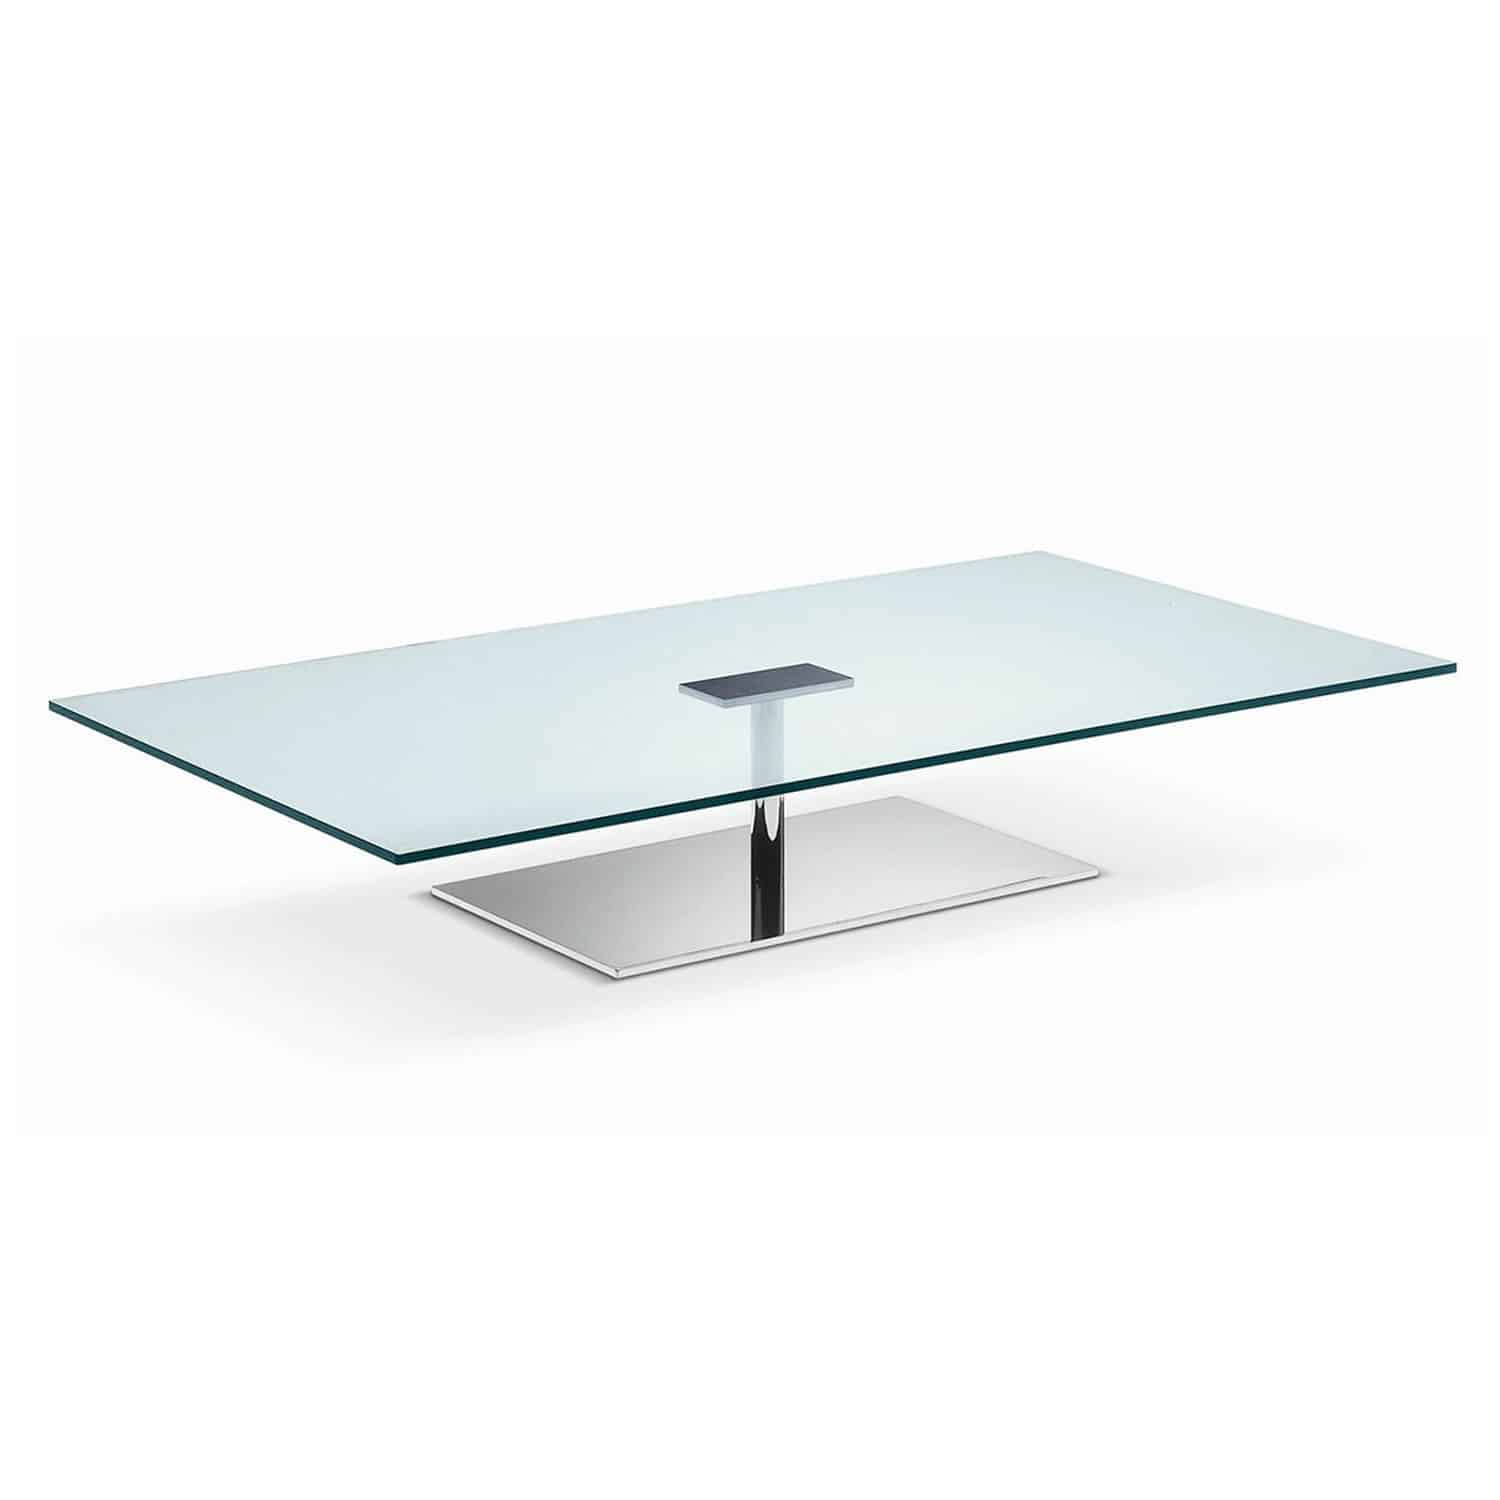 Farniente Rectangular Glass And Metal Coffee Table By